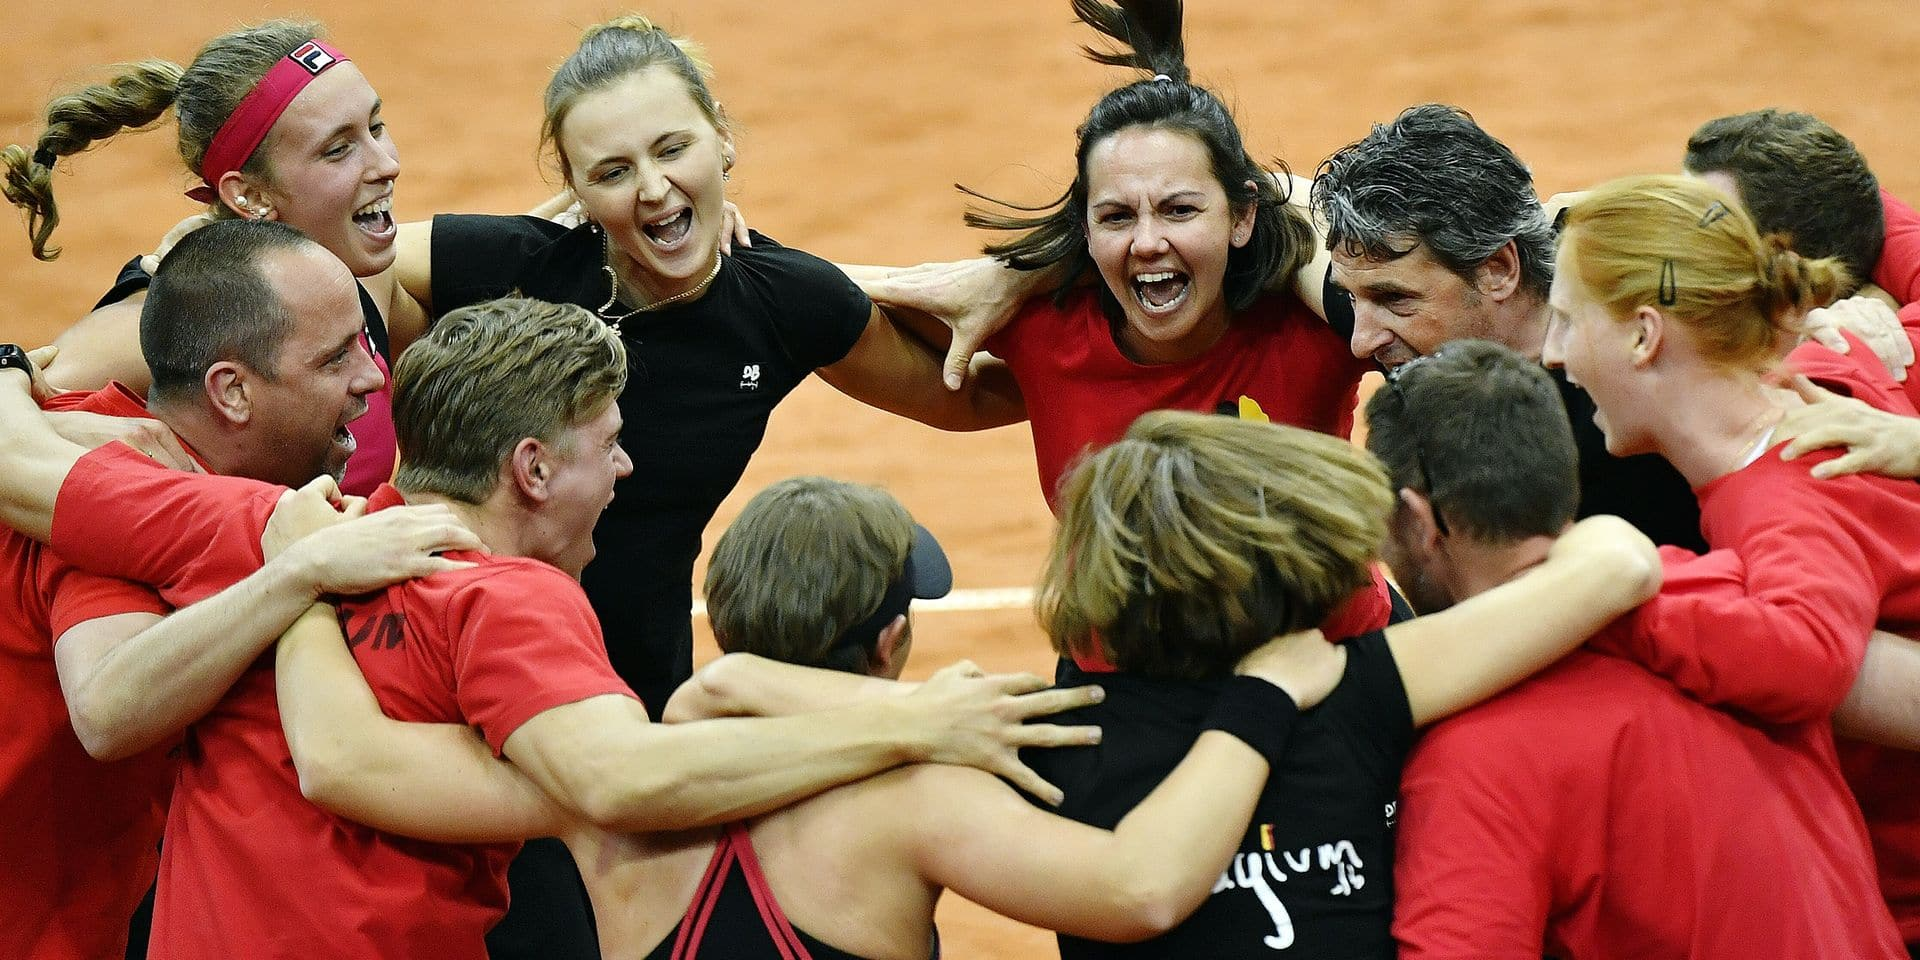 Belgium's coach Dominique Monami and the Belgian team celebrate after the fifth and last game, the double, between Russian pair Anna Blinkova and Daria Kasatkina and Belgian pair An-Sophie Mestach and Elise Mertens, in the Fed Cup World Group Play Off between Russia and Belgium, Sunday 23 April 2017, at the Small Sports Arena Luzhniki in Moscow, Russia. BELGA PHOTO BENOIT DOPPAGNE